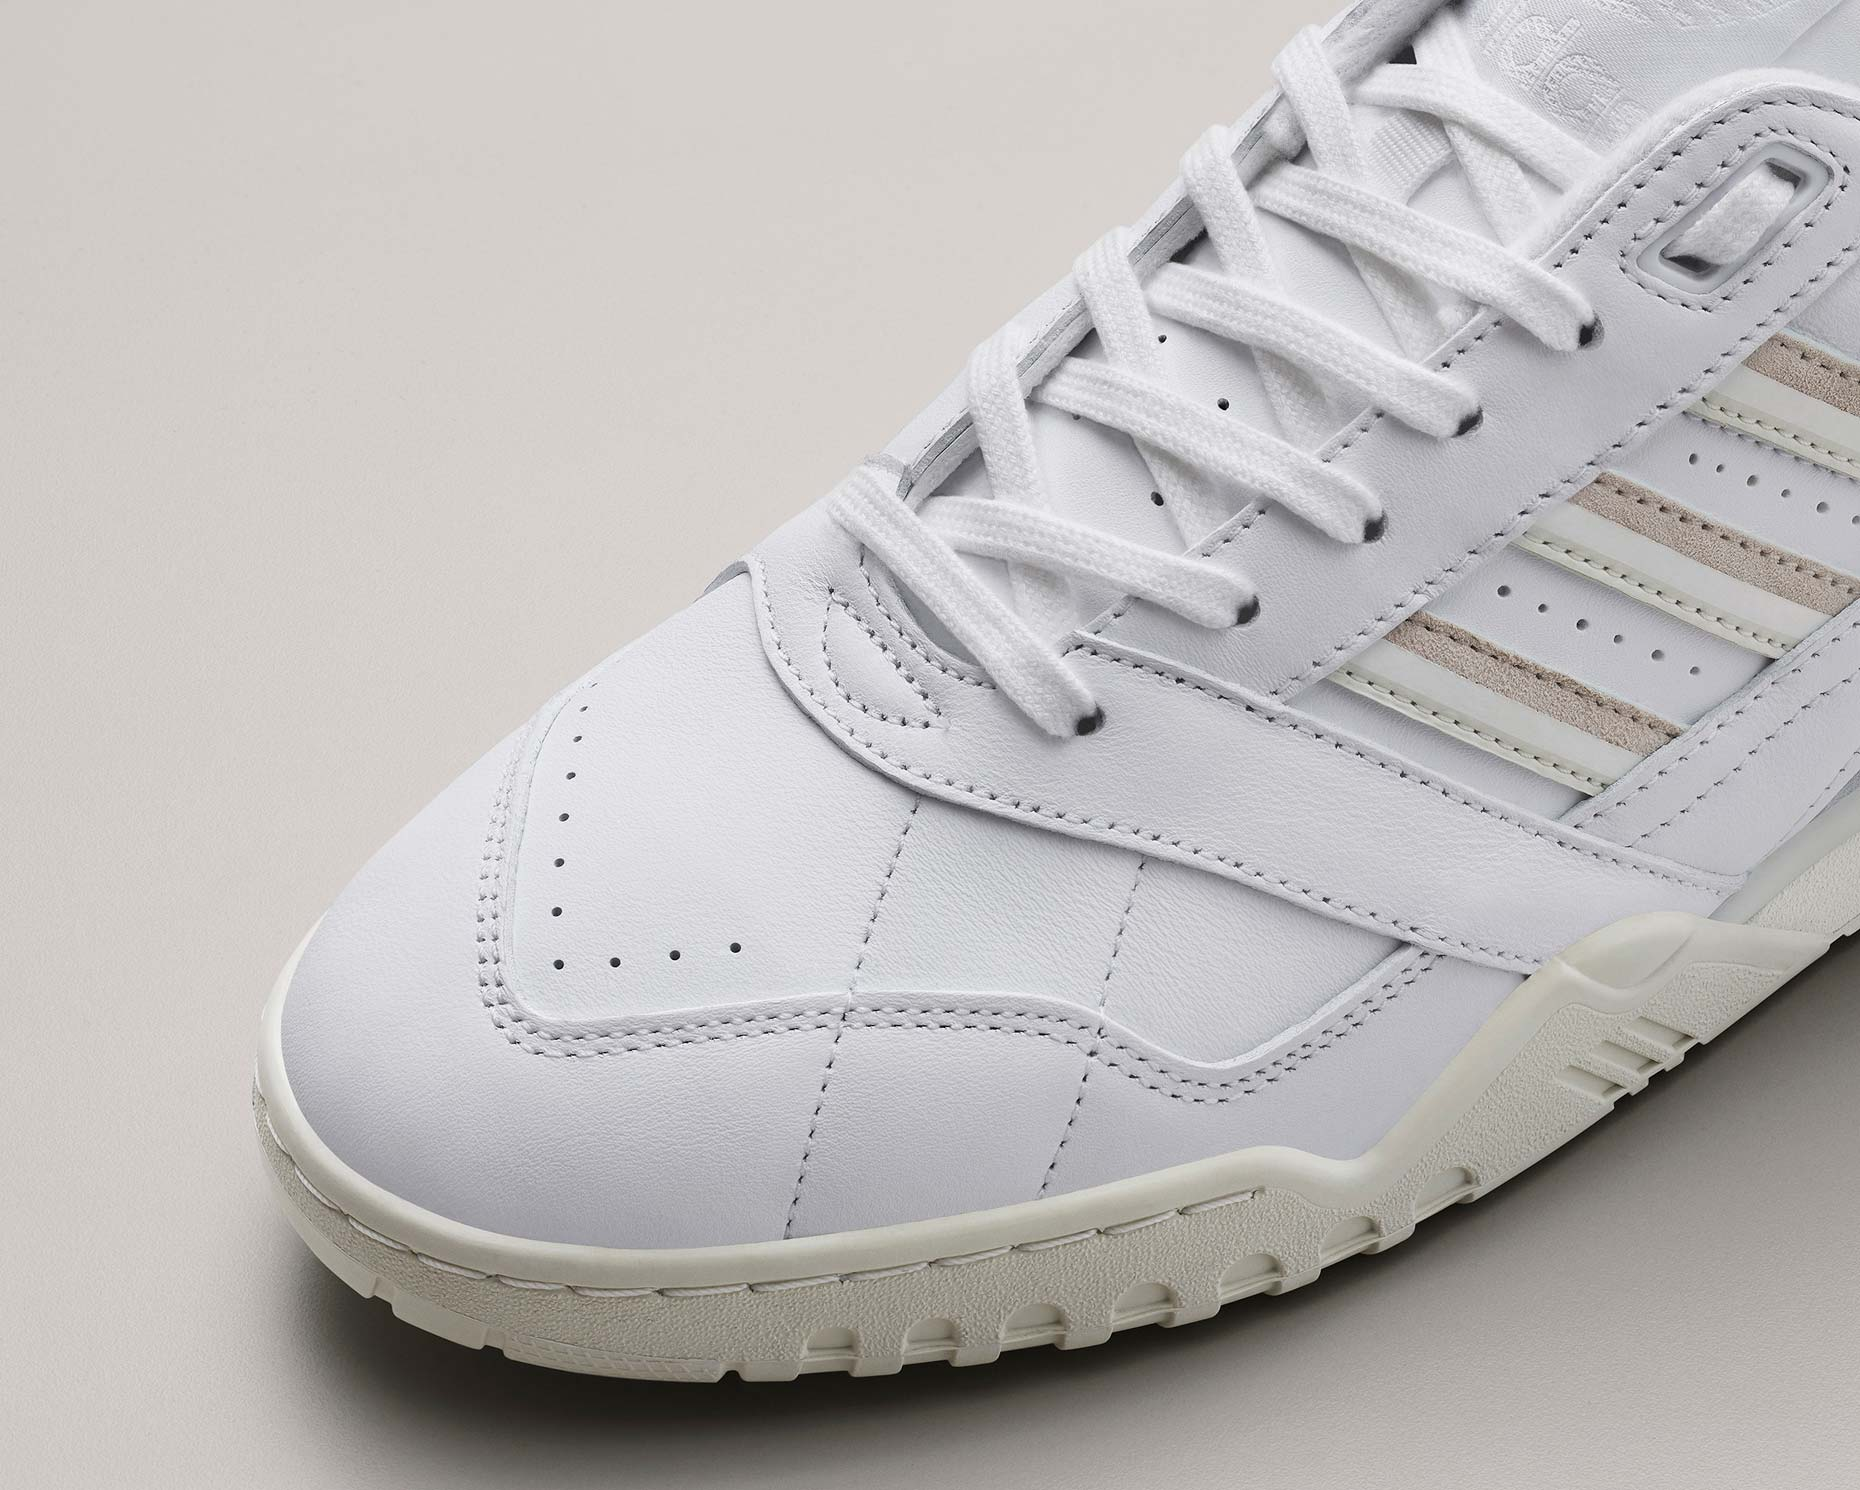 adidasOriginals_SS19_SuperCourt_ARTrainer_CG6465_02_Detail_COMP_b